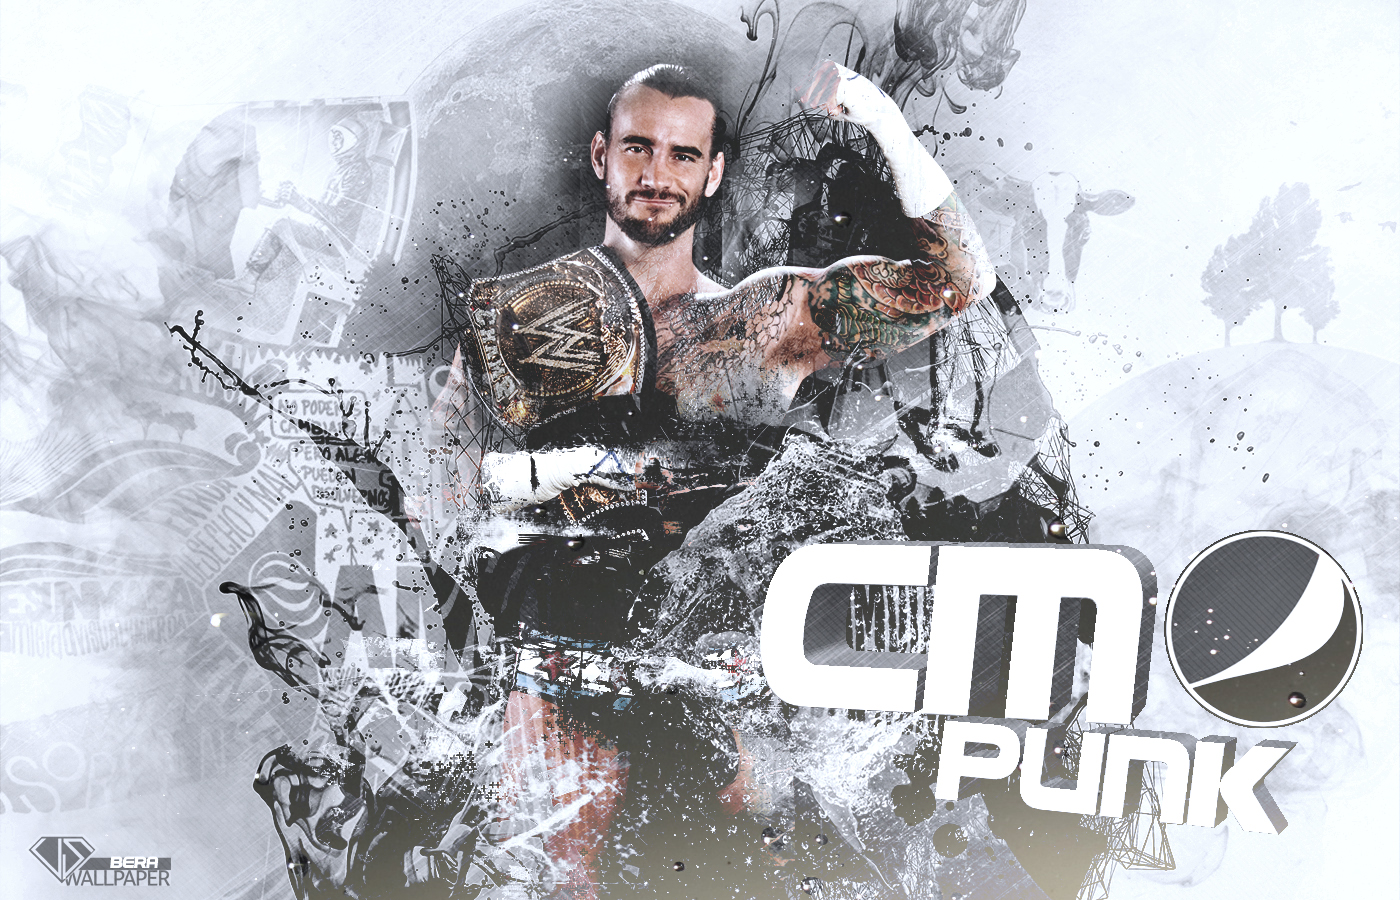 http://3.bp.blogspot.com/-mT749beLCi8/UBOXTnXNZqI/AAAAAAAAAx8/aZm7cShY5aM/s1600/wwe_cm_punk_best_2012-Wallpaper-2012-04.jpg